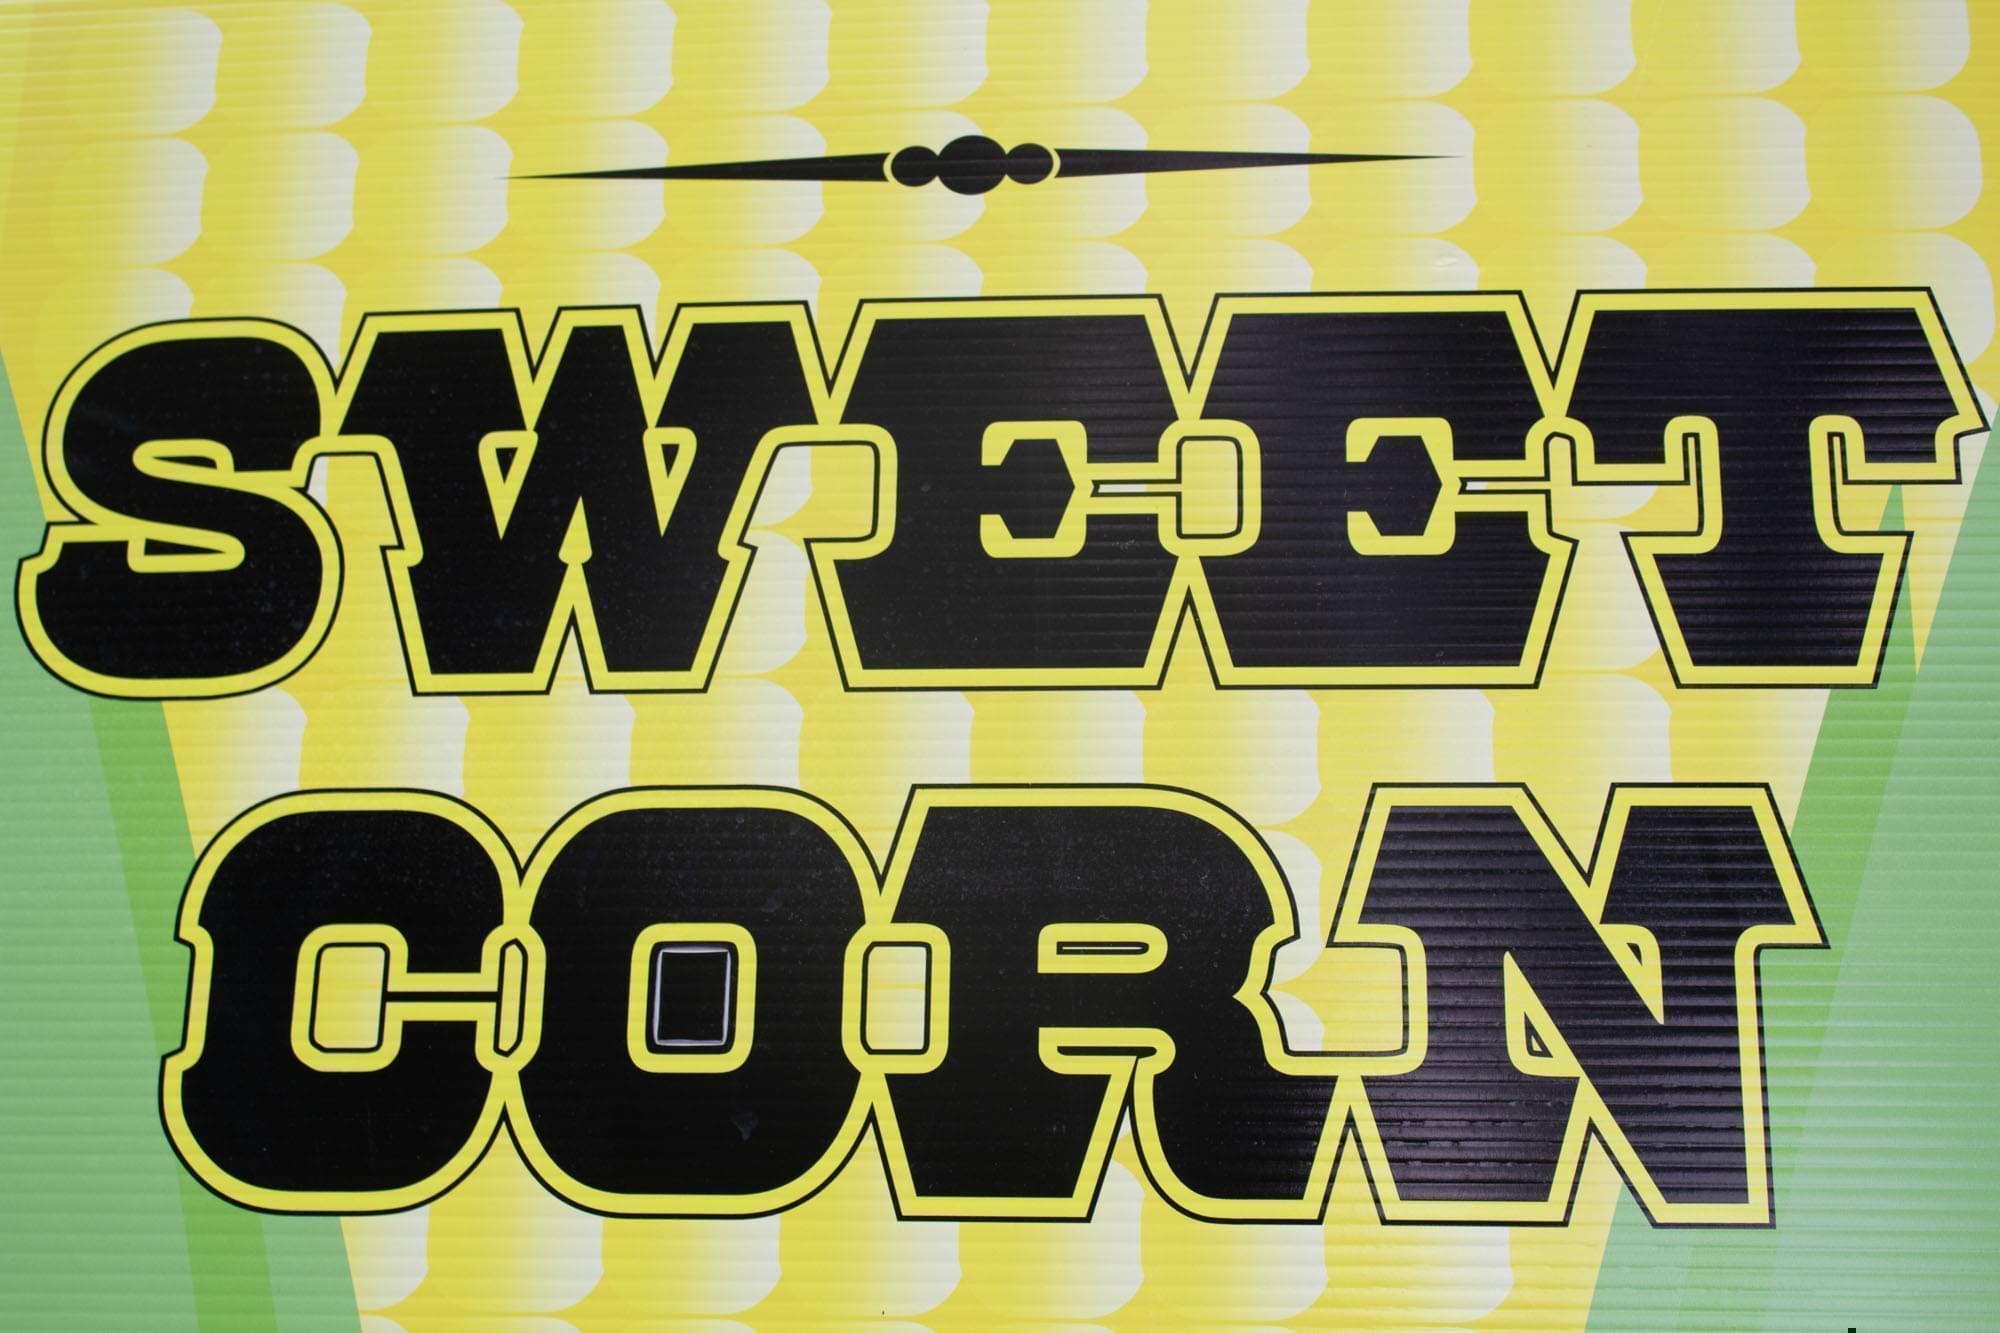 At the Iowa State Fair, there's free sweet corn on the last Friday.